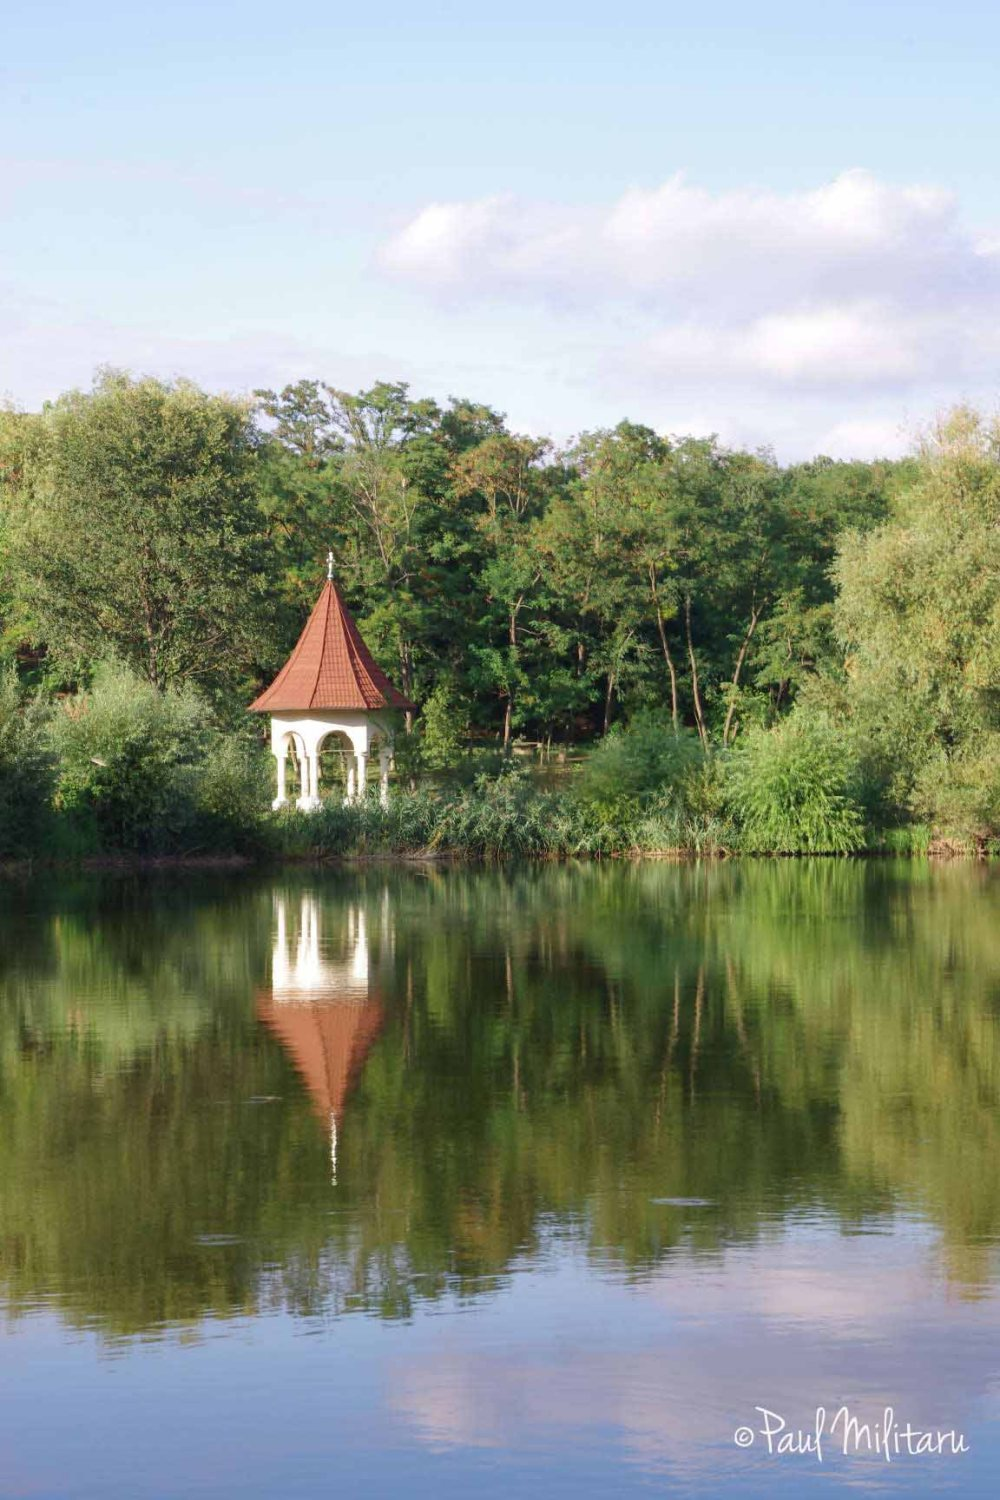 pavilion at the edge of Lake Cernica